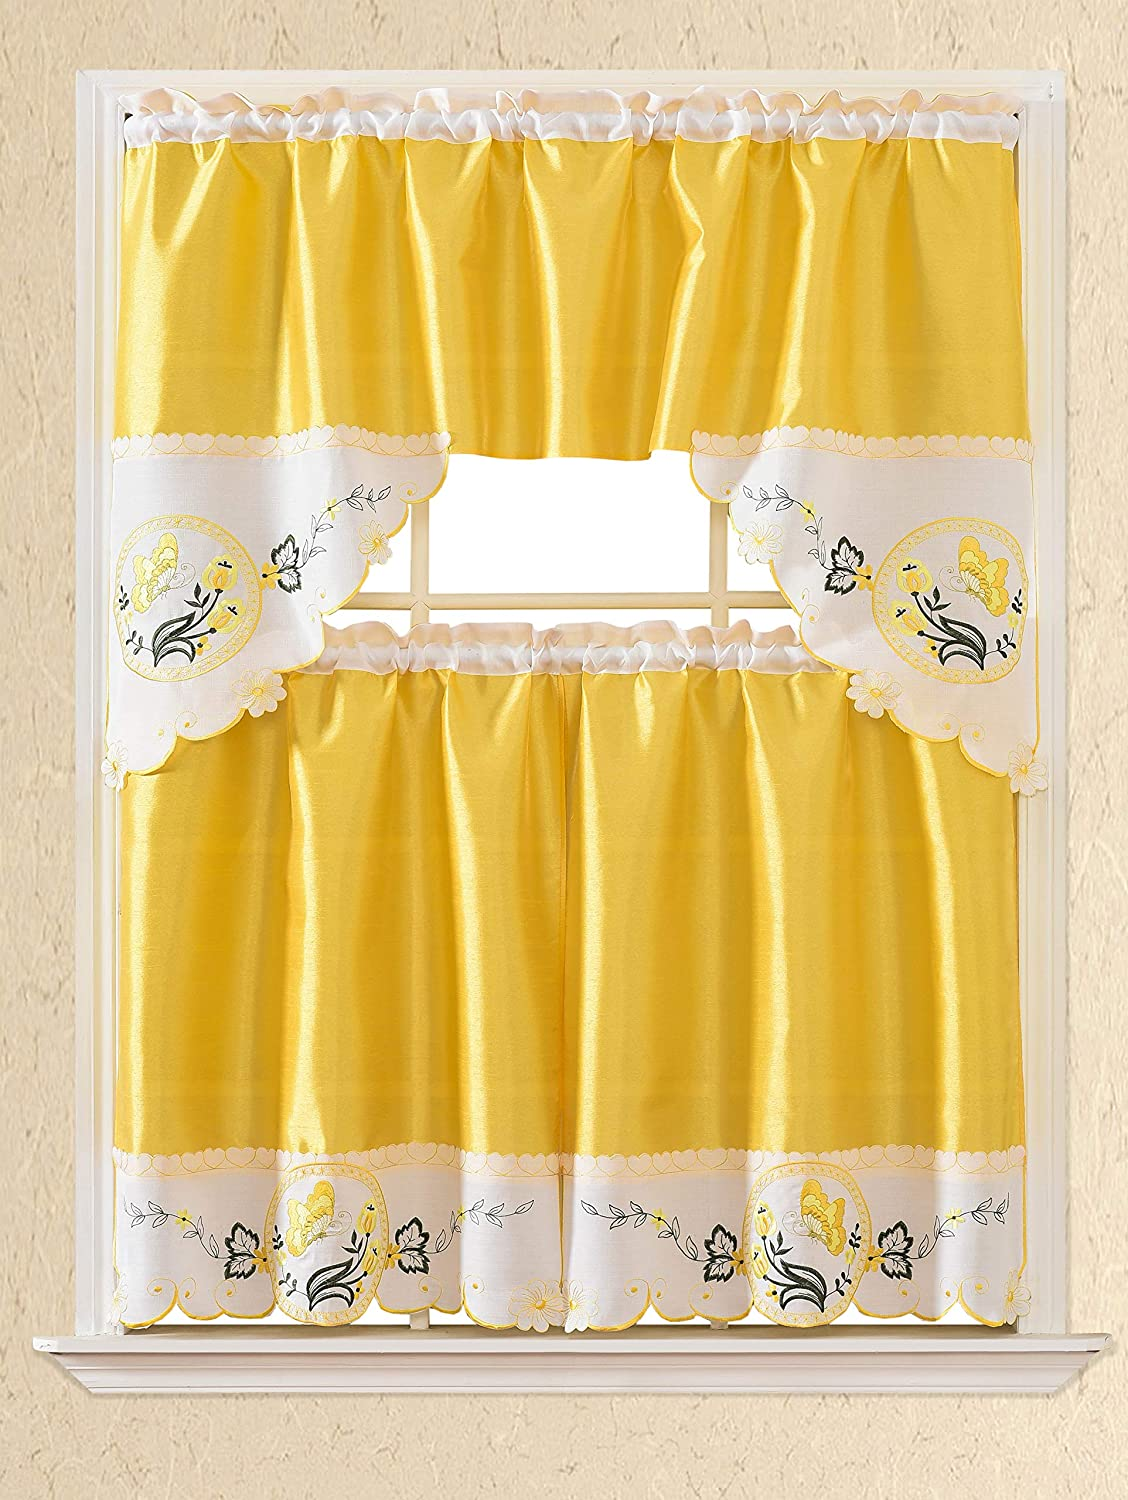 3pc Rod Pocket Embroidered Kitchen Curtains and Valances Set Swag Curtains & Tier Set 36 Inch Length Floral Fruit Designs Many Colors( BT335-YELLOW)